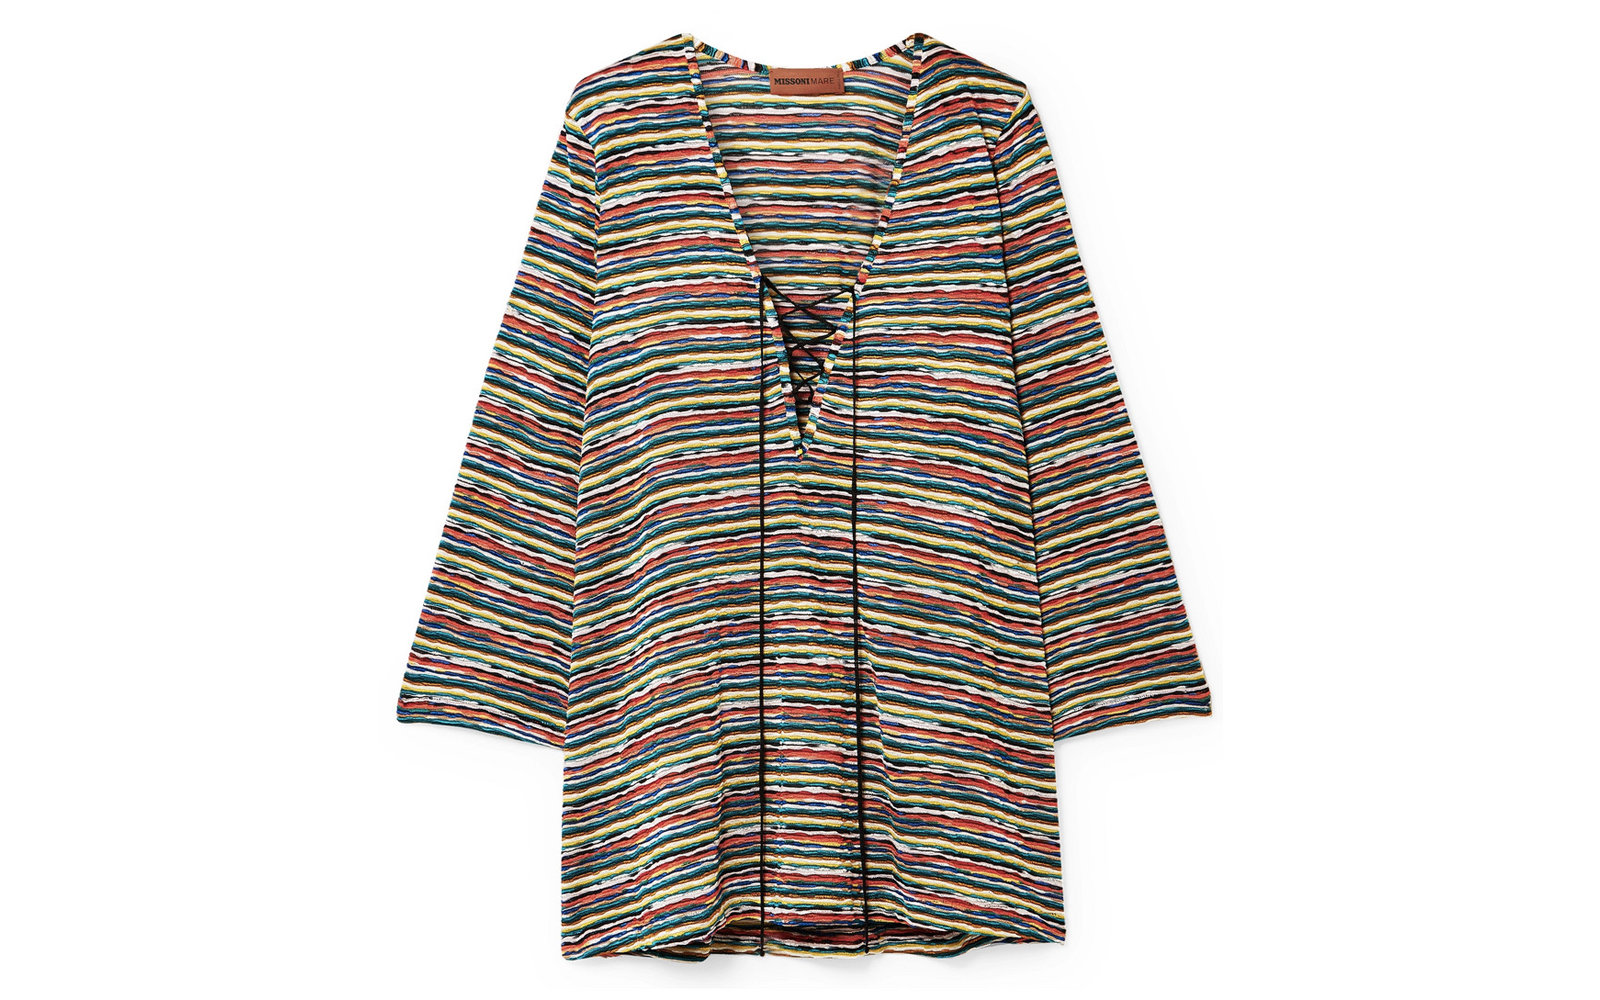 Stylish Caftan Dresses for the Easiest Vacation Outfits Ever